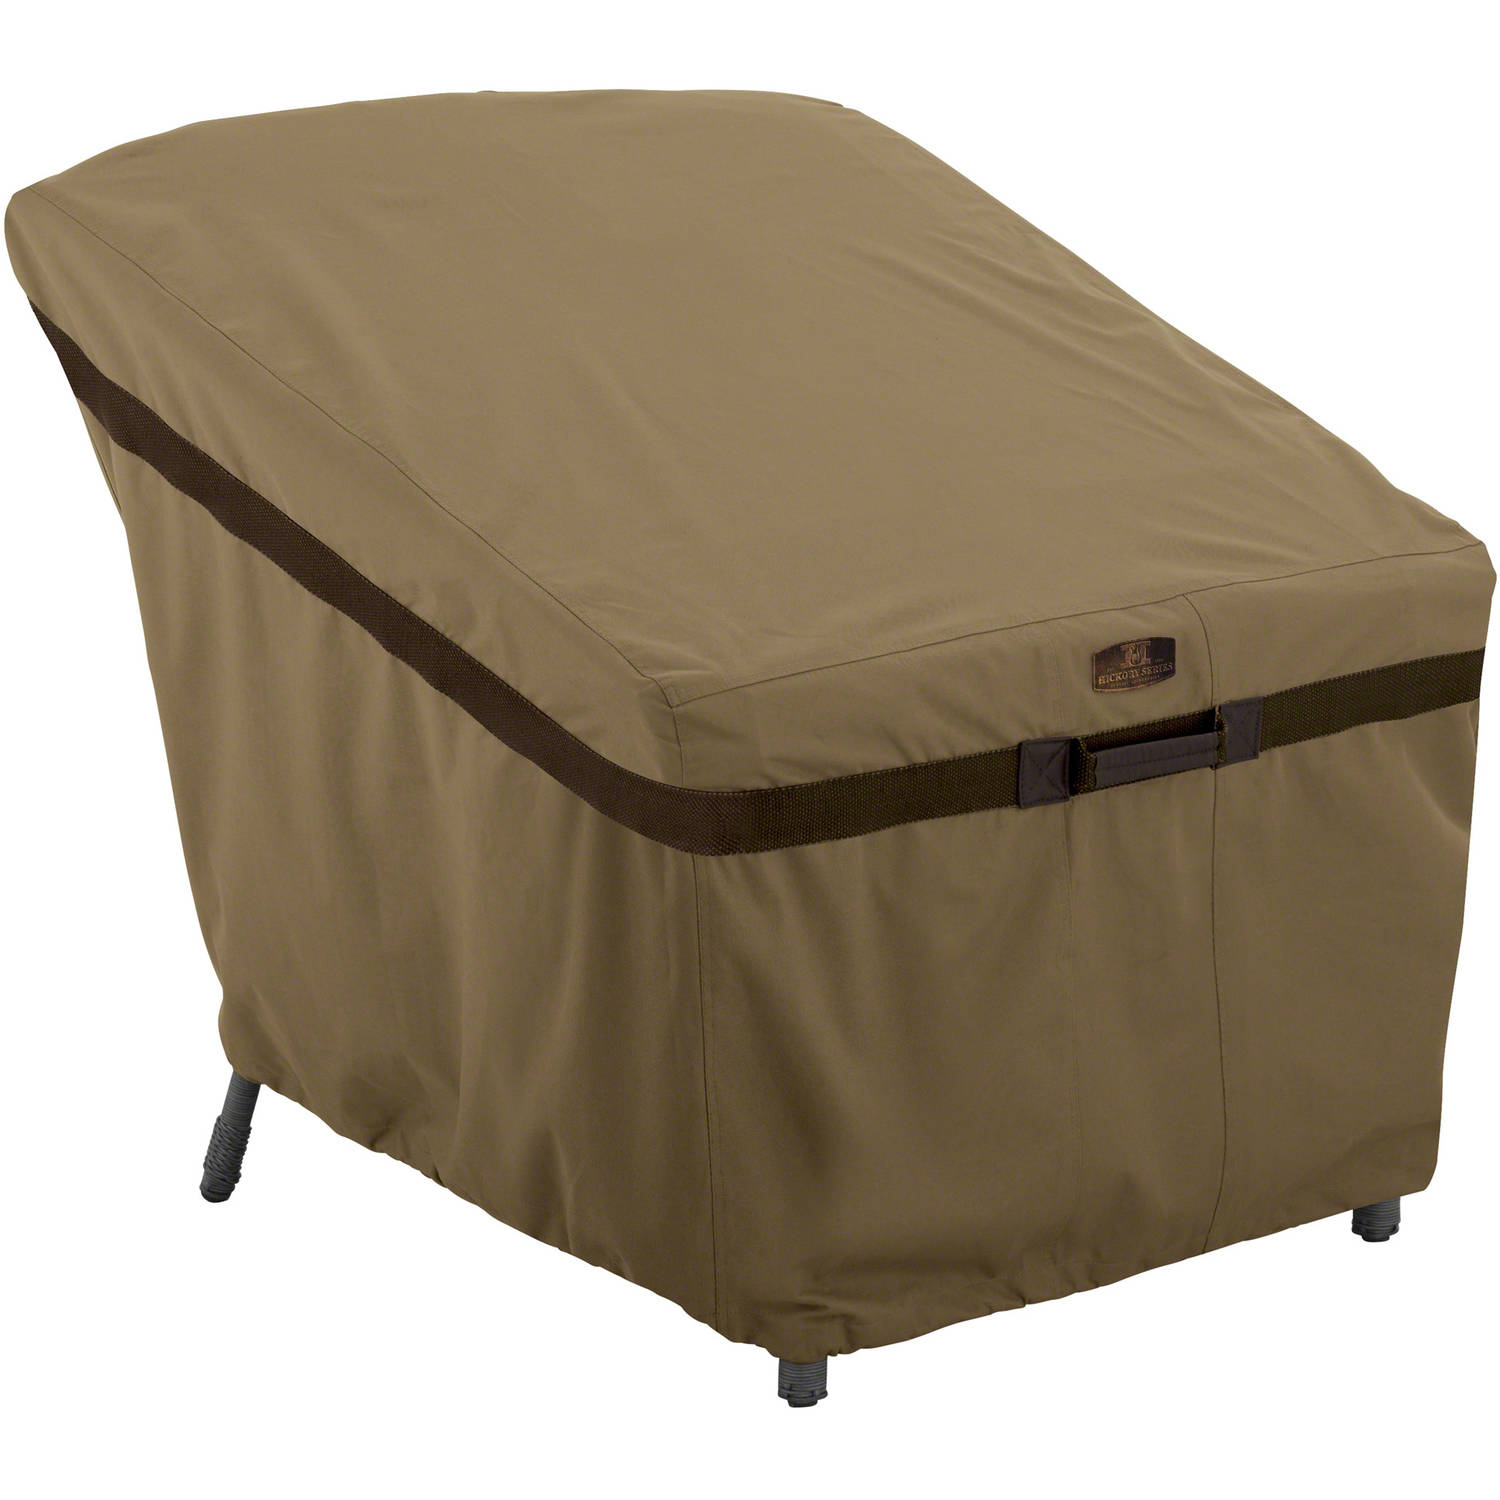 Classic Accessories Hickory Lounge Chair Patio Furniture Storage Cover, Tan